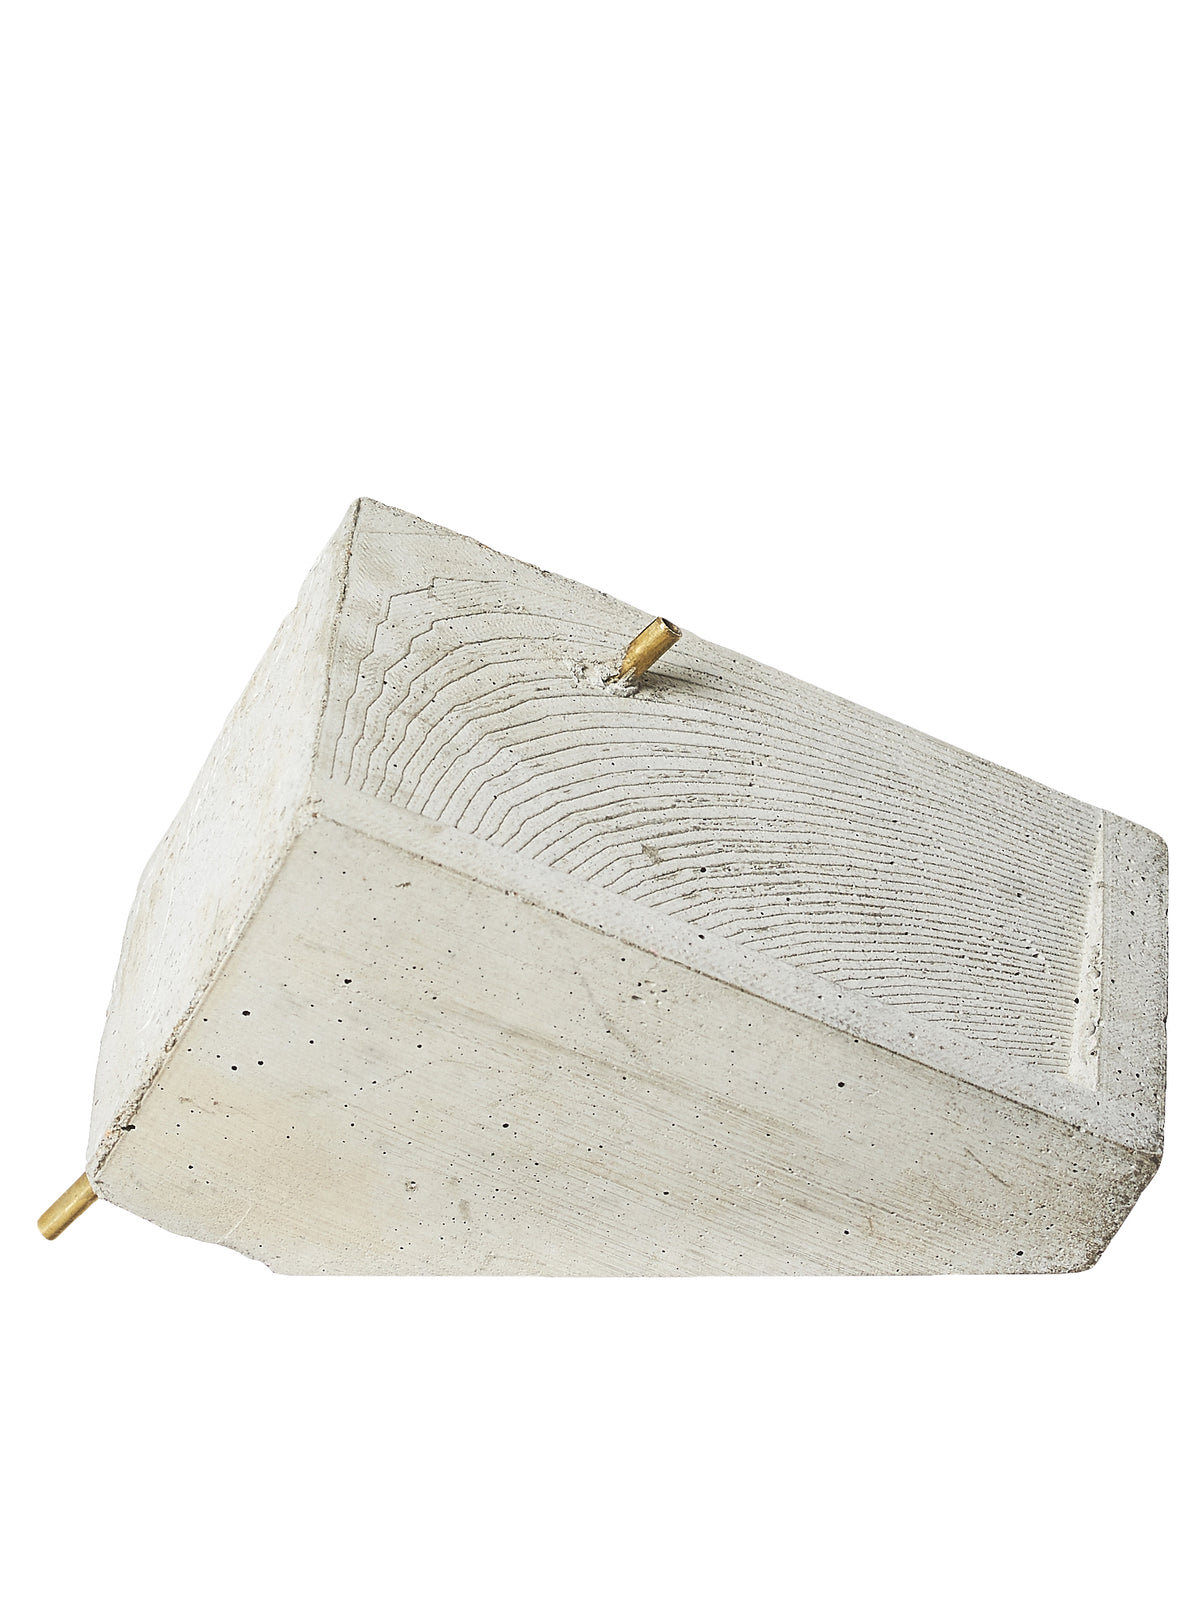 Concrete Objects Incense Burner - Hlorenzo Front